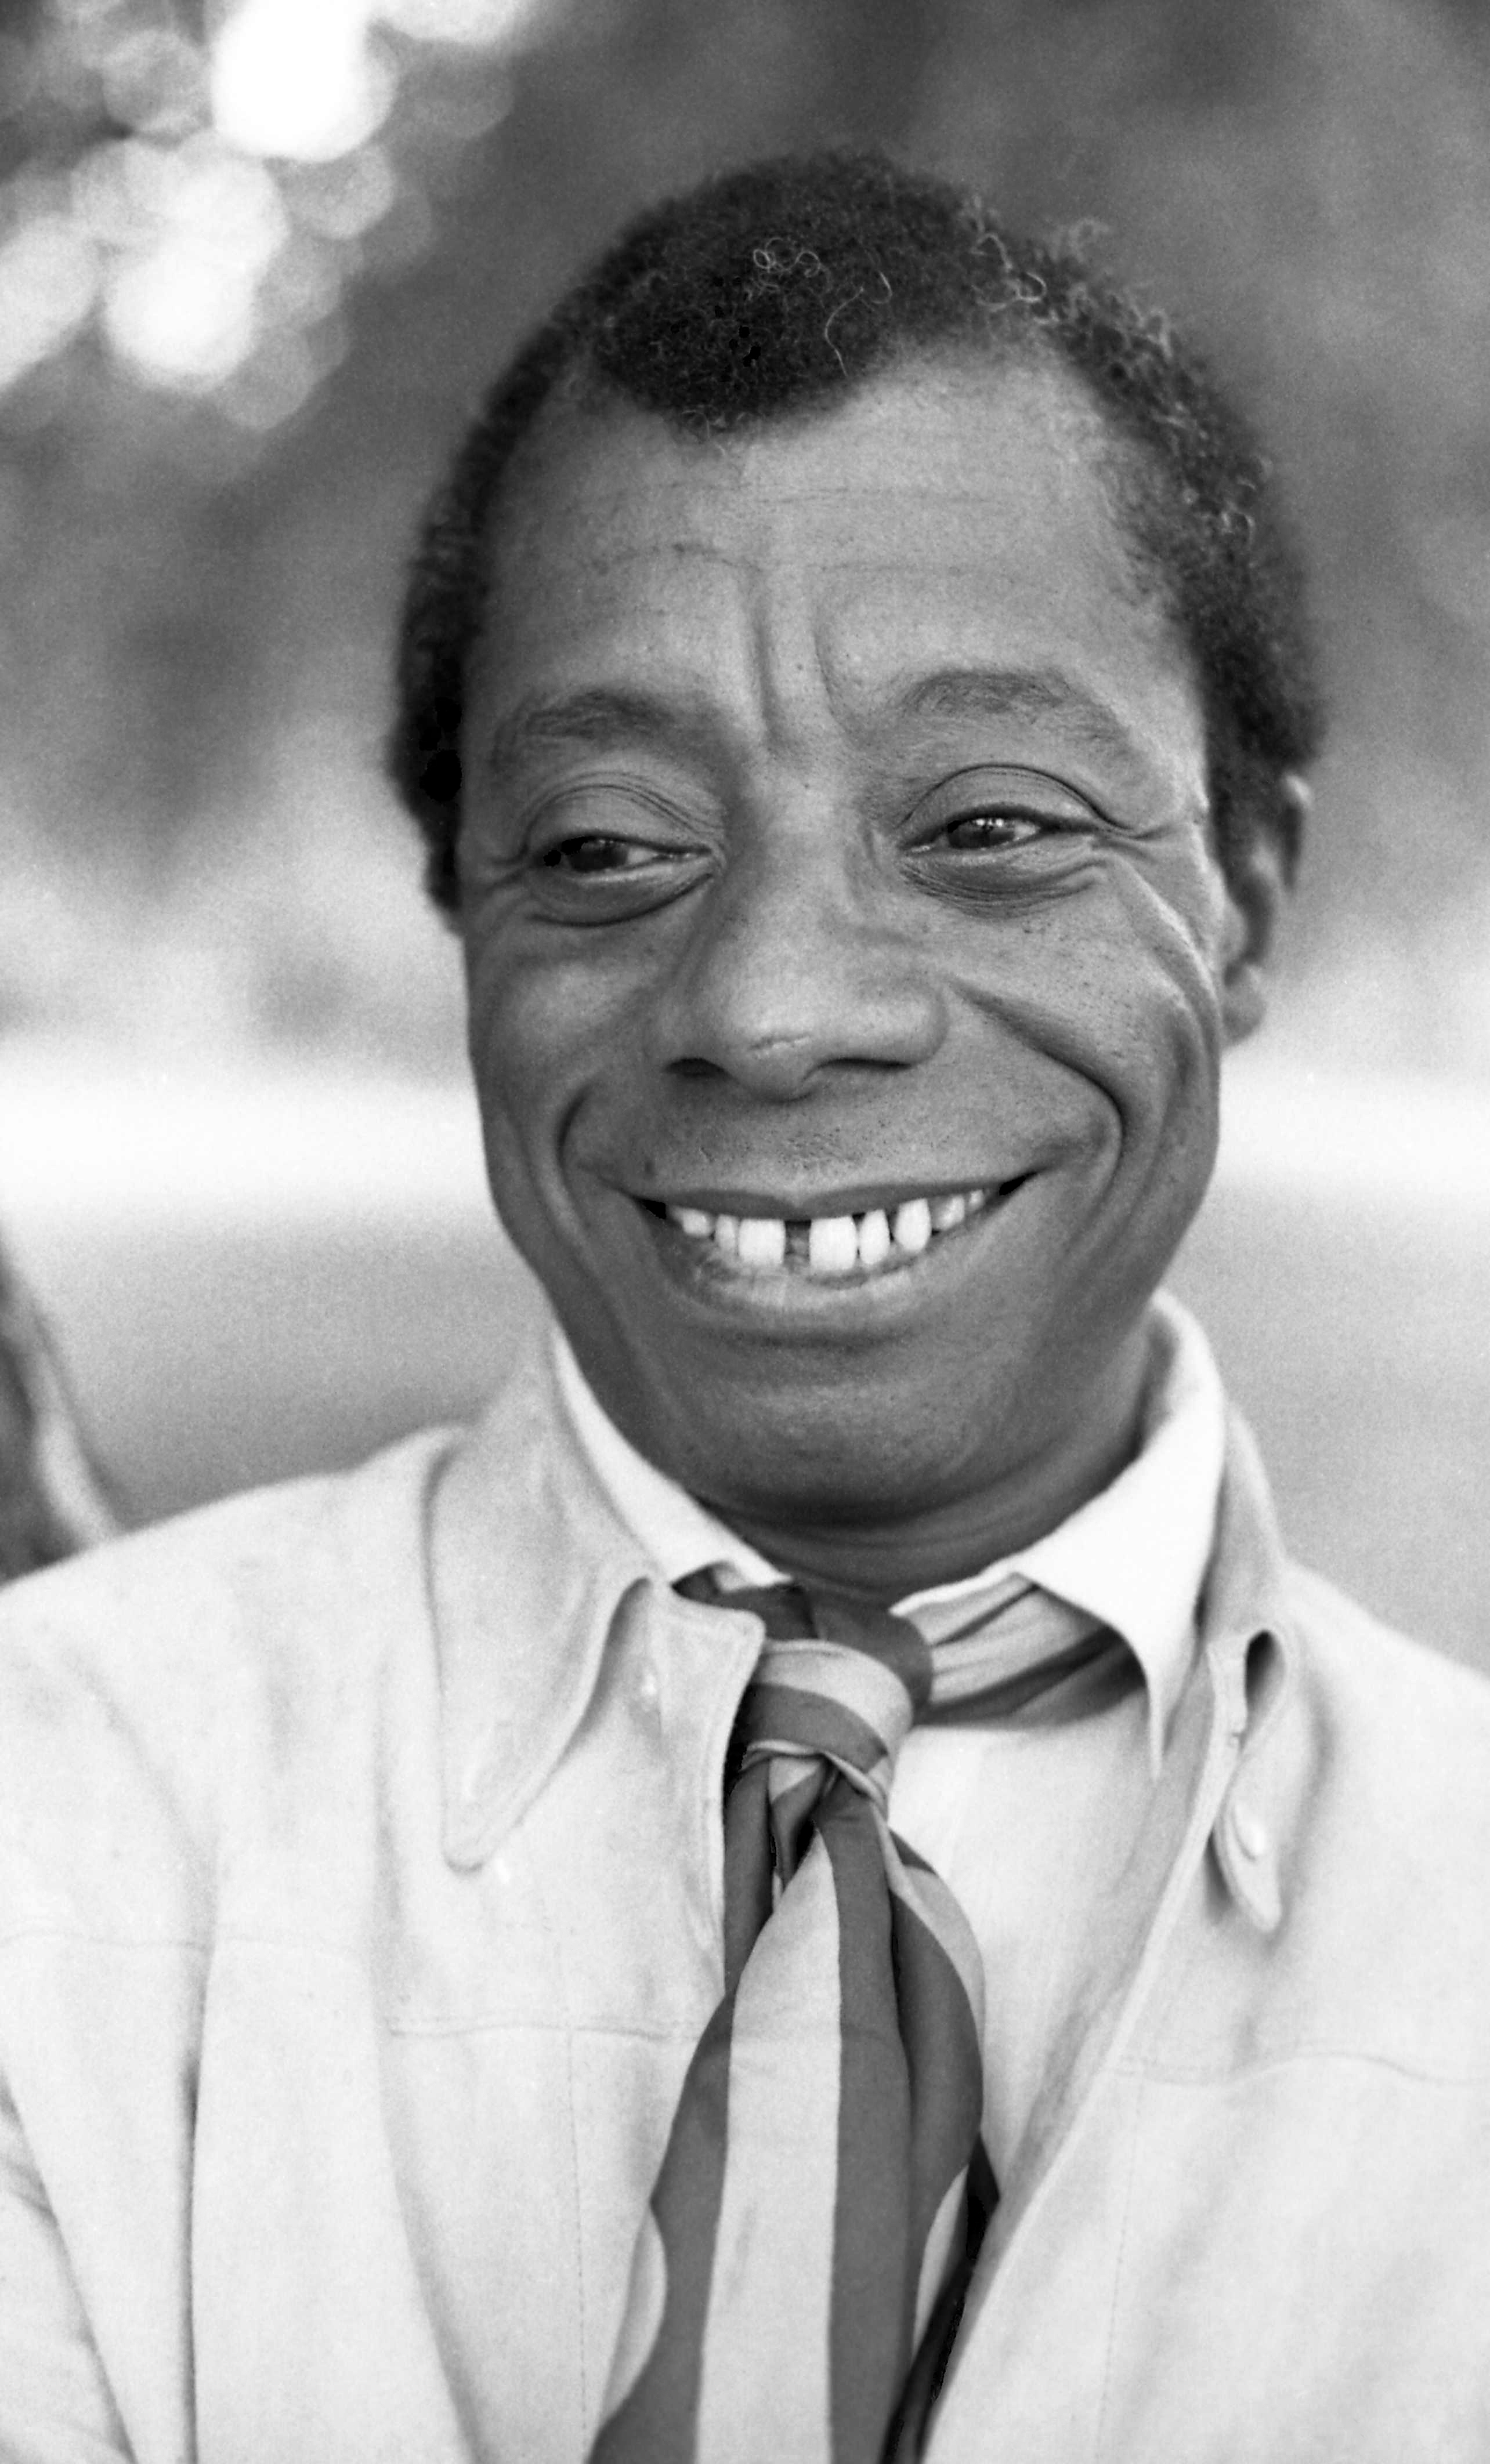 james baldwin james baldwin 35allanwarren allan warren jpg